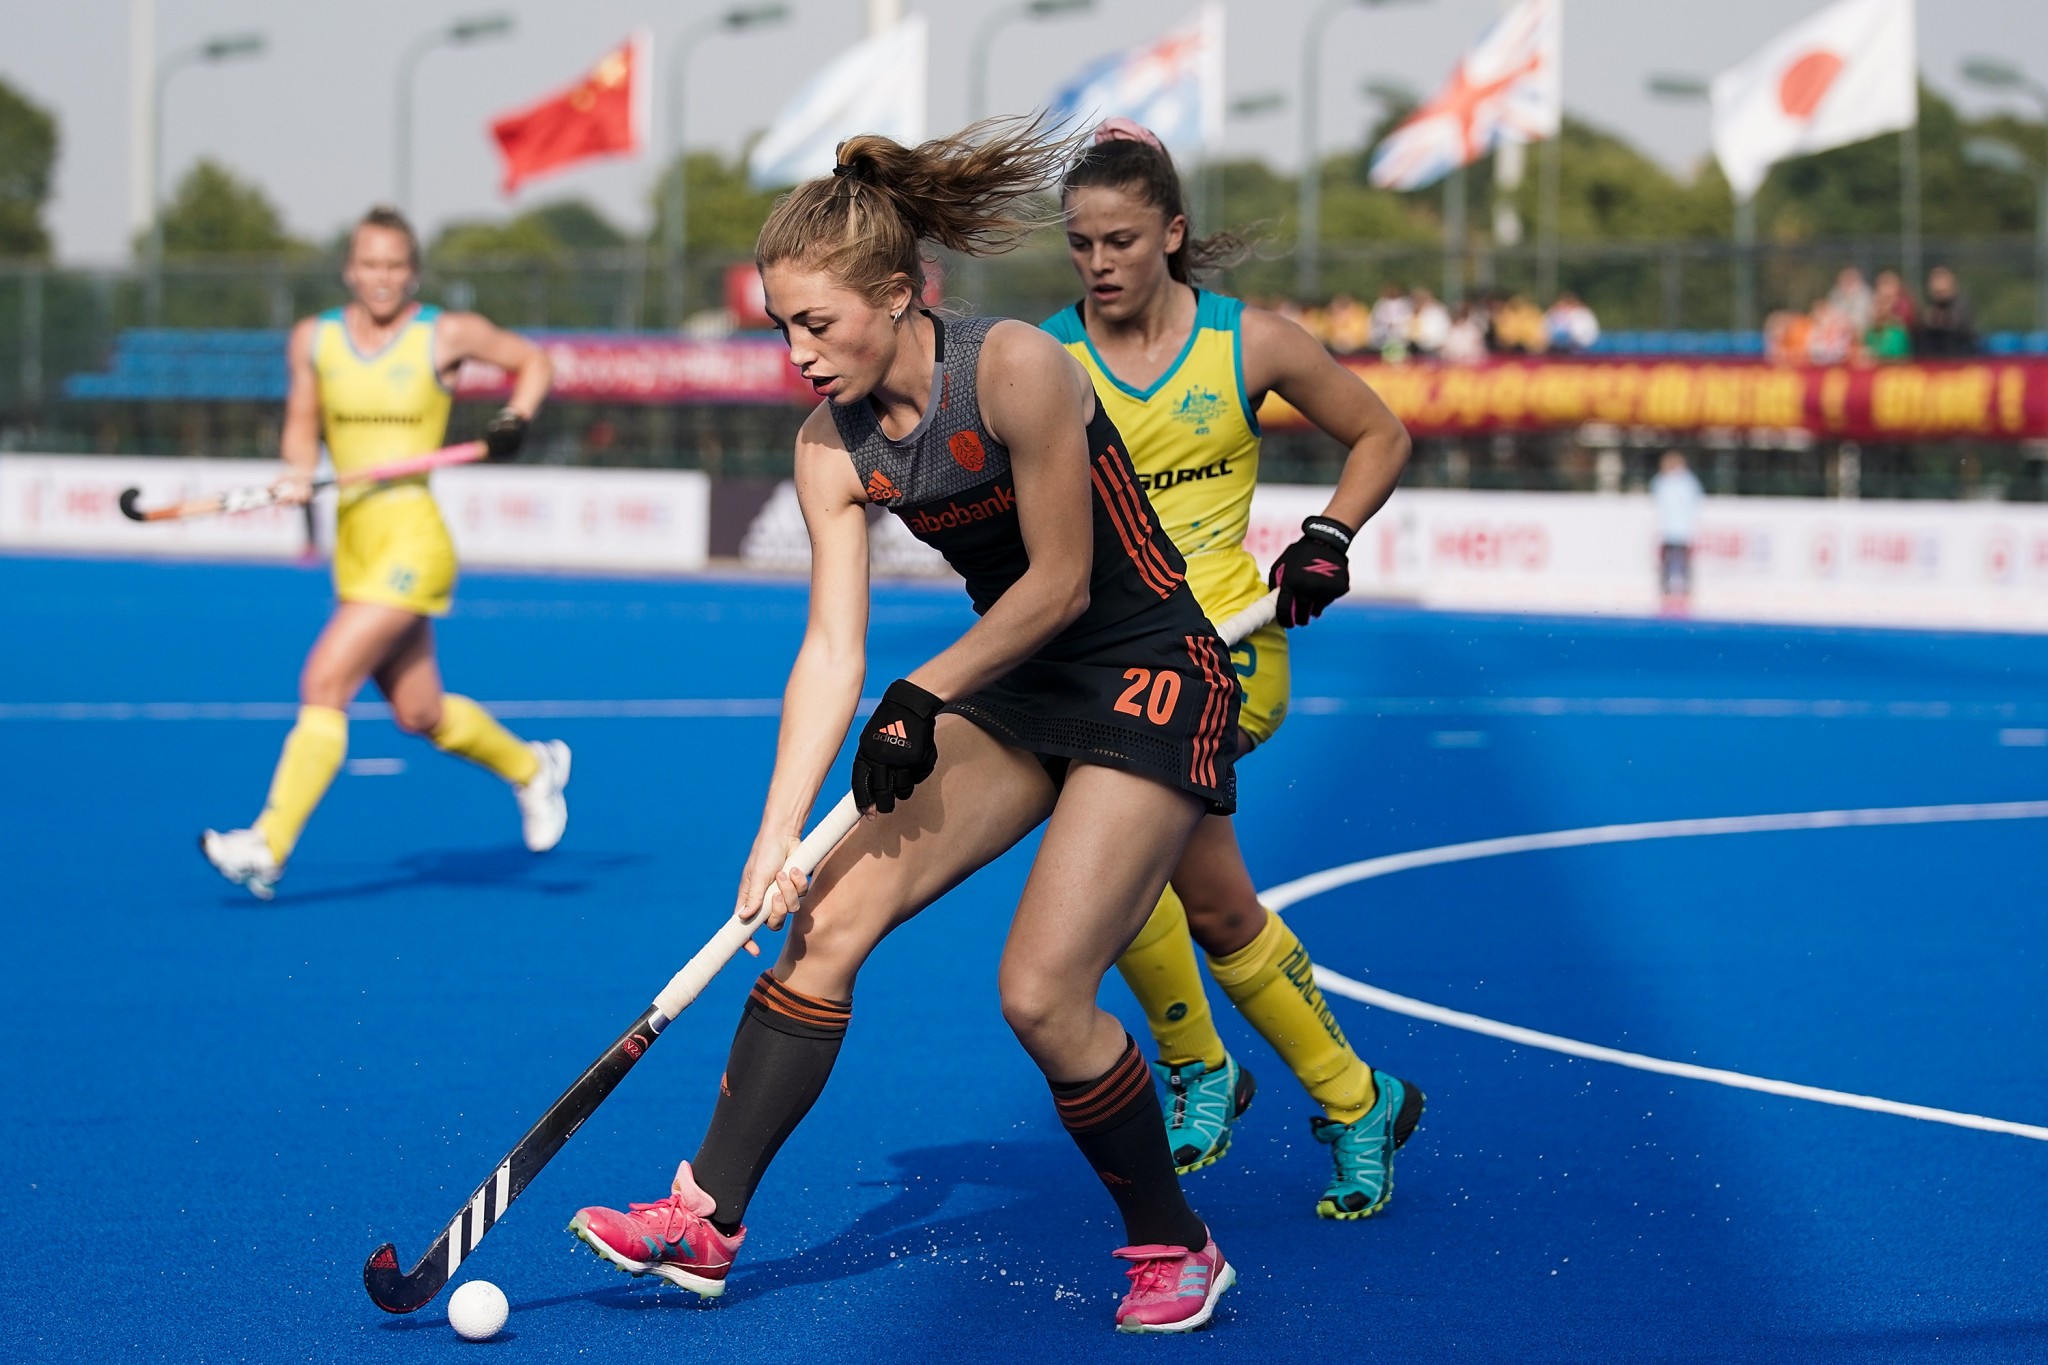 Netherlands unbeaten at FIH Women's Hockey Champions Trophy after victory over Australia